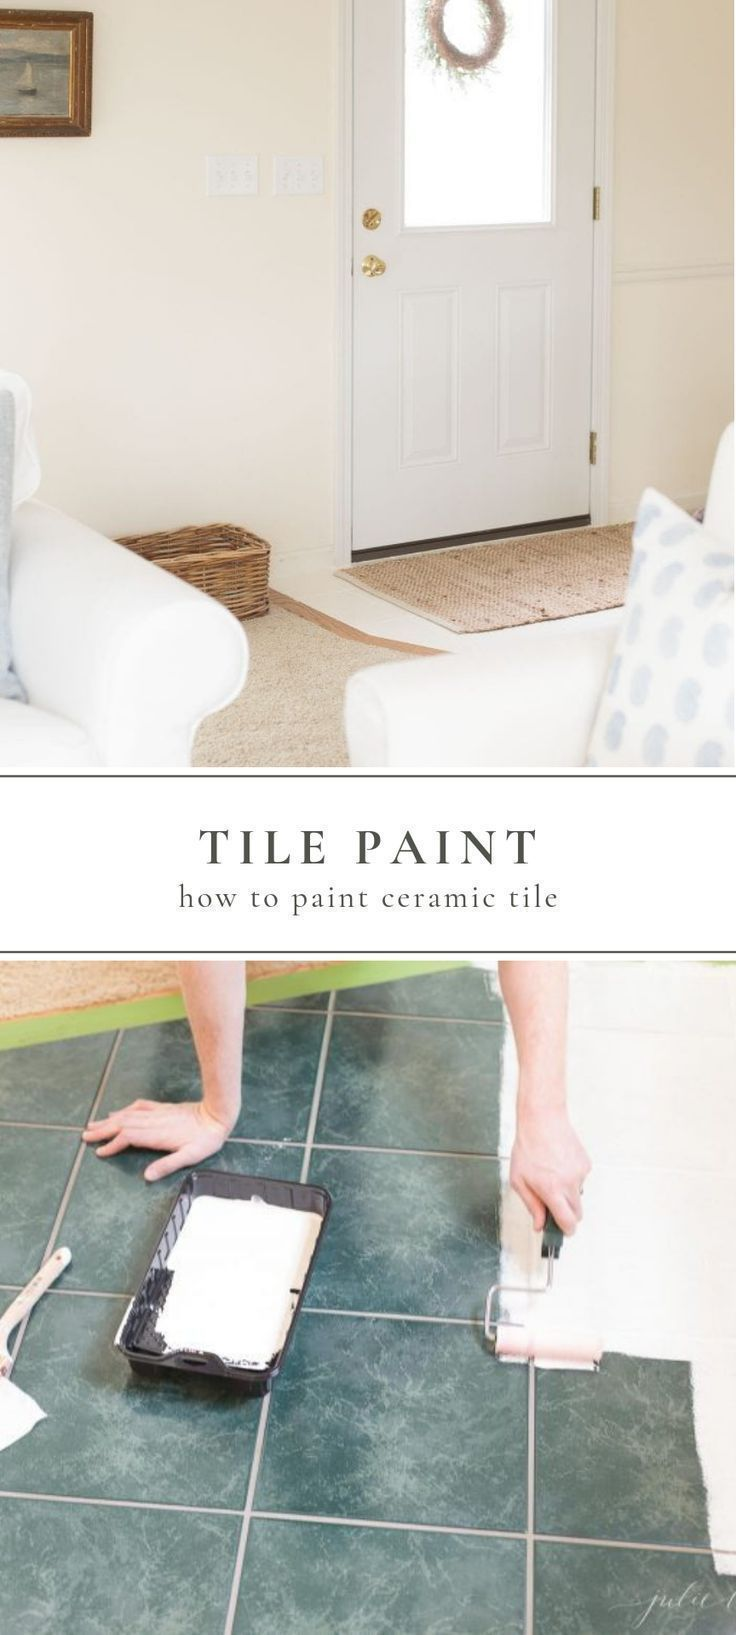 All About How To Paint Ceramic Tile Diy Flooring Tile Ceramictile Painttile Painting Ceramic Tiles Painting Bathroom Tiles Ceramic Tile Bathrooms